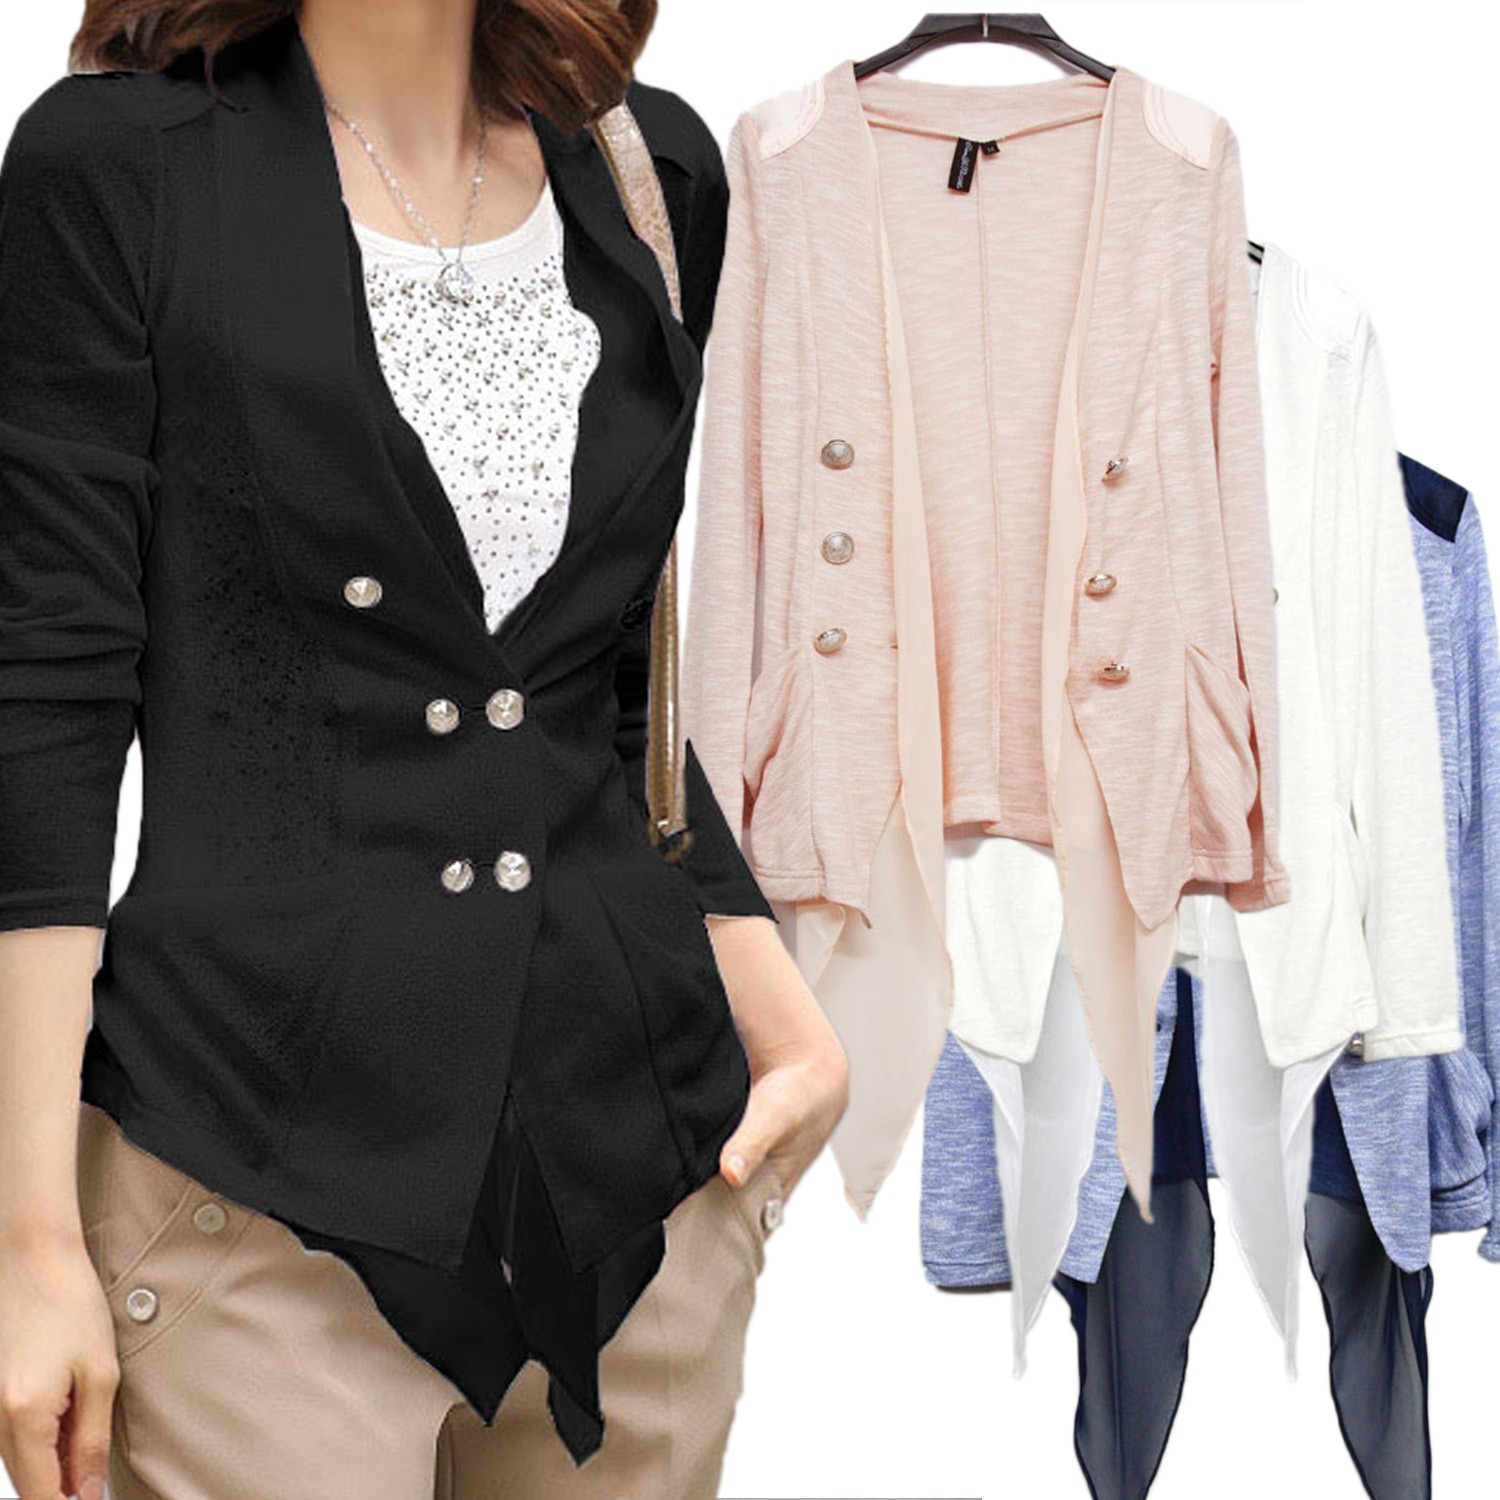 Double Buttoned Cardigan Sweater Top - 1186#